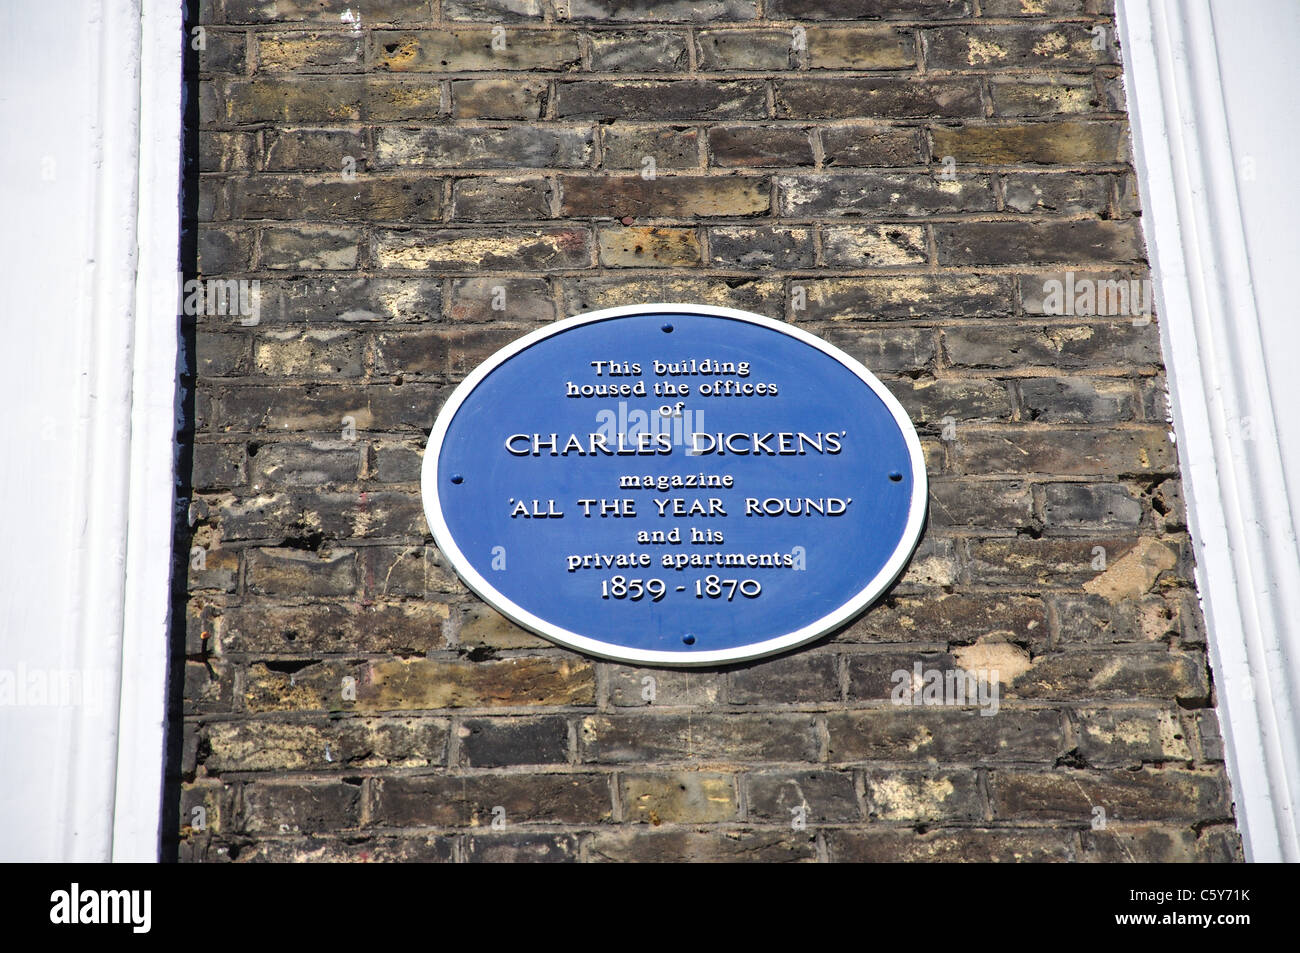 Winning Charles Dickens Blue Plaque Tavistock Street Covent Garden West  With Foxy Charles Dickens Blue Plaque Tavistock Street Covent Garden West End  City Of Westminster London England United Kingdom With Amazing Covers For Garden Furniture Homebase Also Council Garden Waste Collection In Addition National Garden Vouchers Where To Use And Savage Garden Cherry Cola As Well As Dads Garden Additionally Greenes Fence Raised Garden Bed From Alamycom With   Foxy Charles Dickens Blue Plaque Tavistock Street Covent Garden West  With Amazing Charles Dickens Blue Plaque Tavistock Street Covent Garden West End  City Of Westminster London England United Kingdom And Winning Covers For Garden Furniture Homebase Also Council Garden Waste Collection In Addition National Garden Vouchers Where To Use From Alamycom